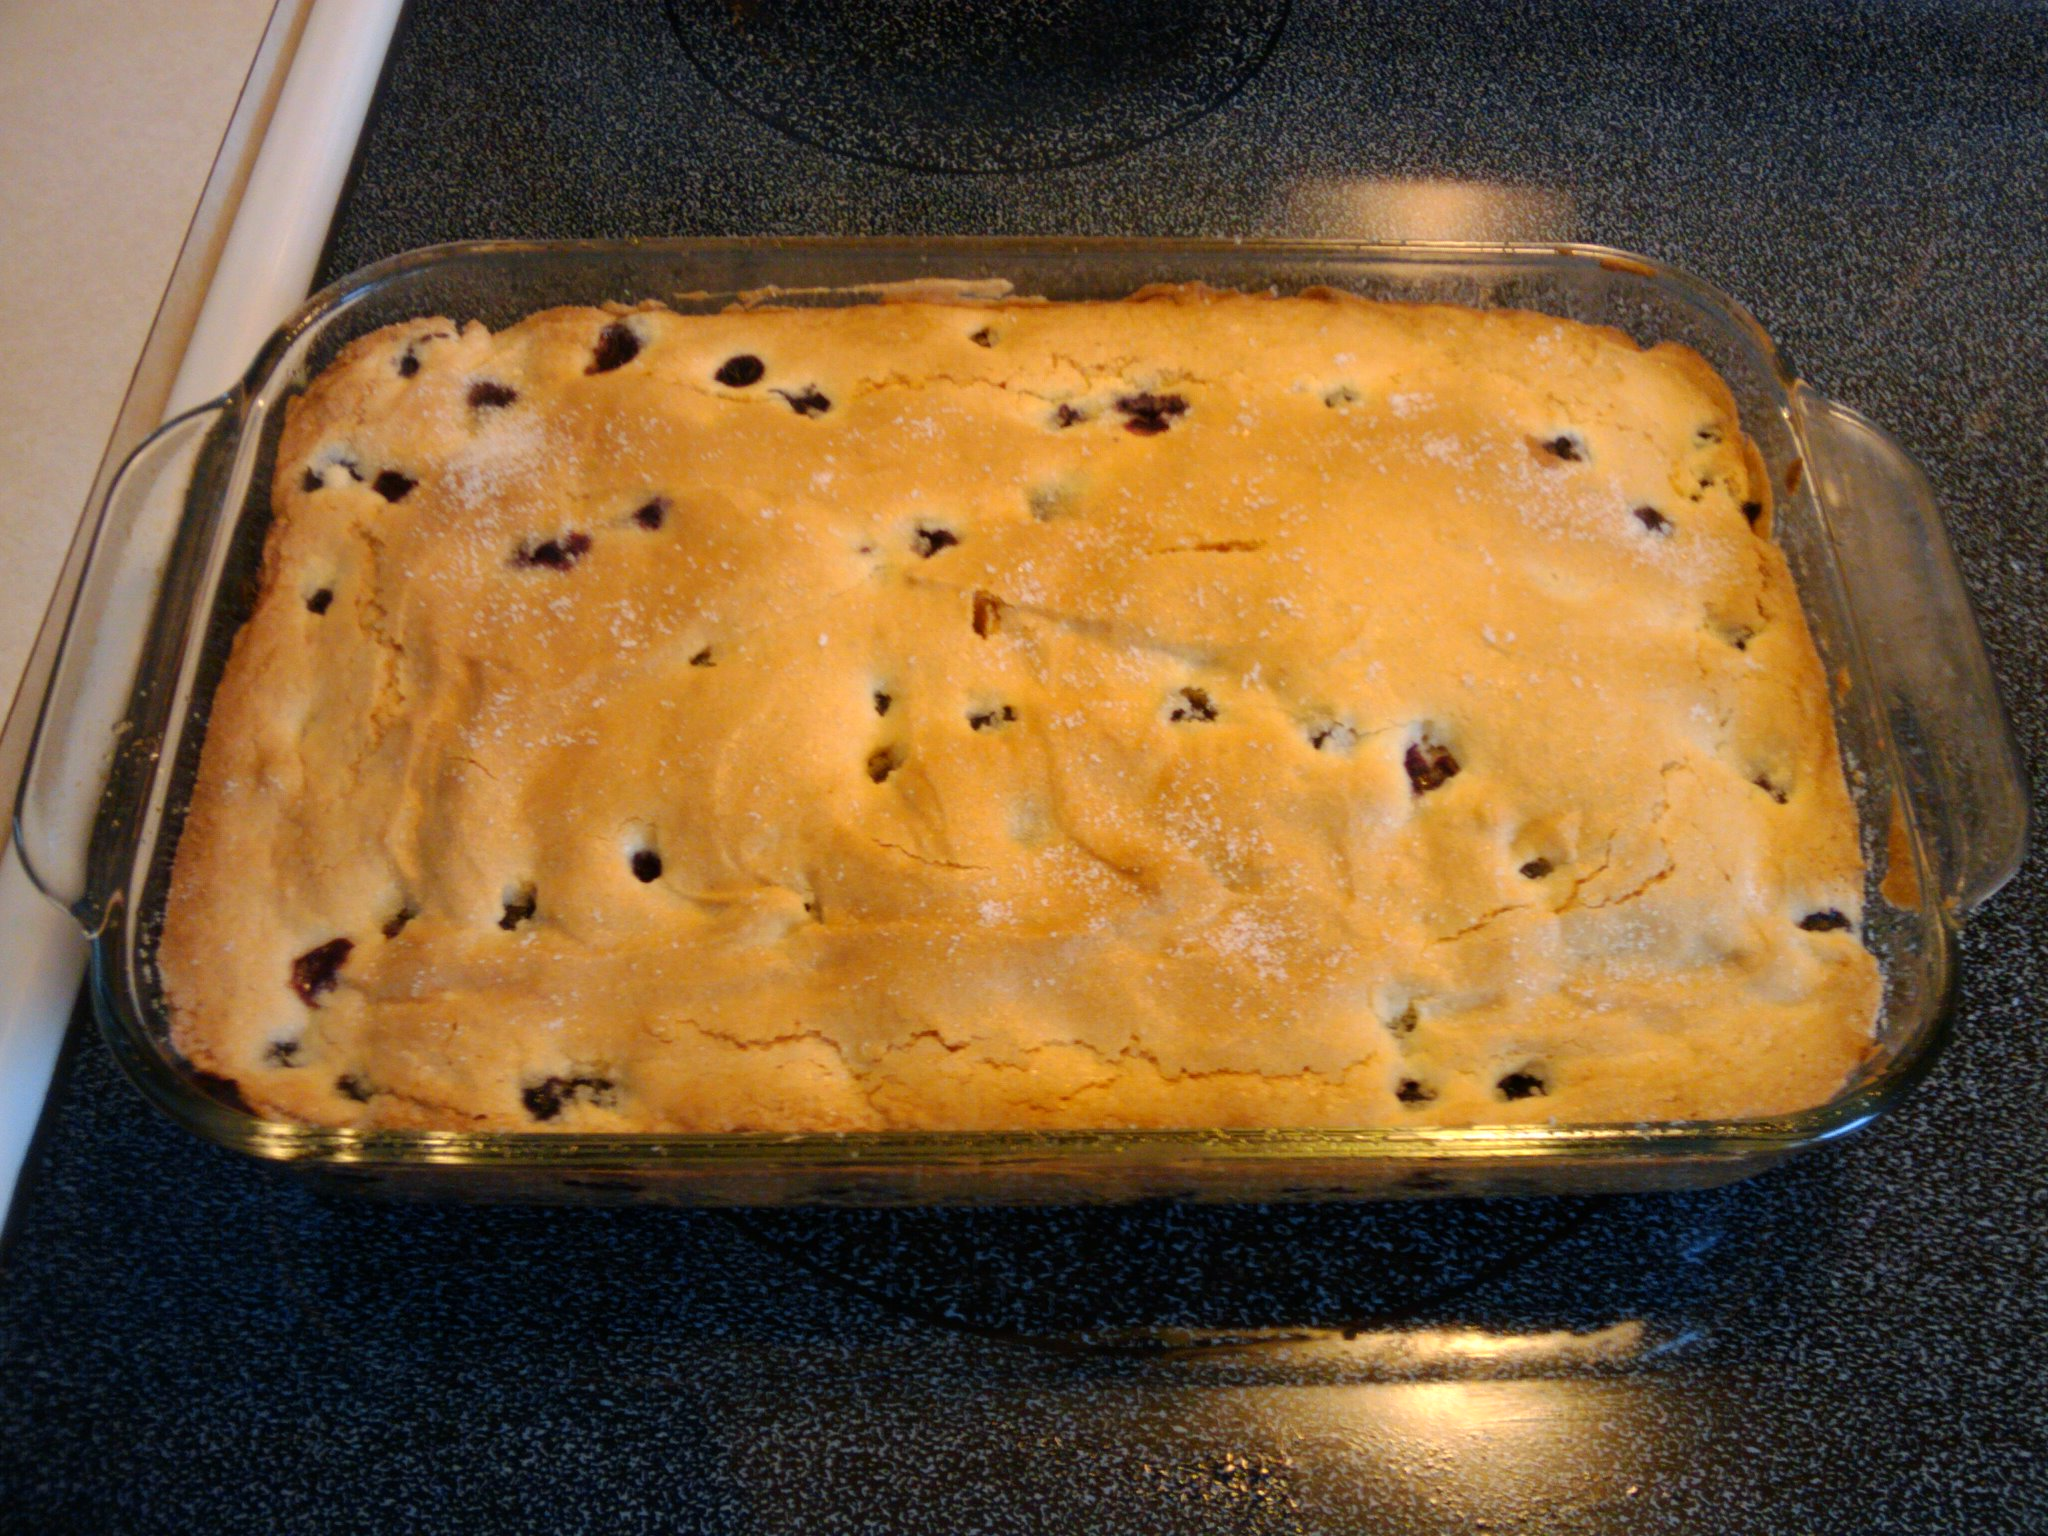 Orlando,FL :: Home-made blueberry cake made from a New England recipe.